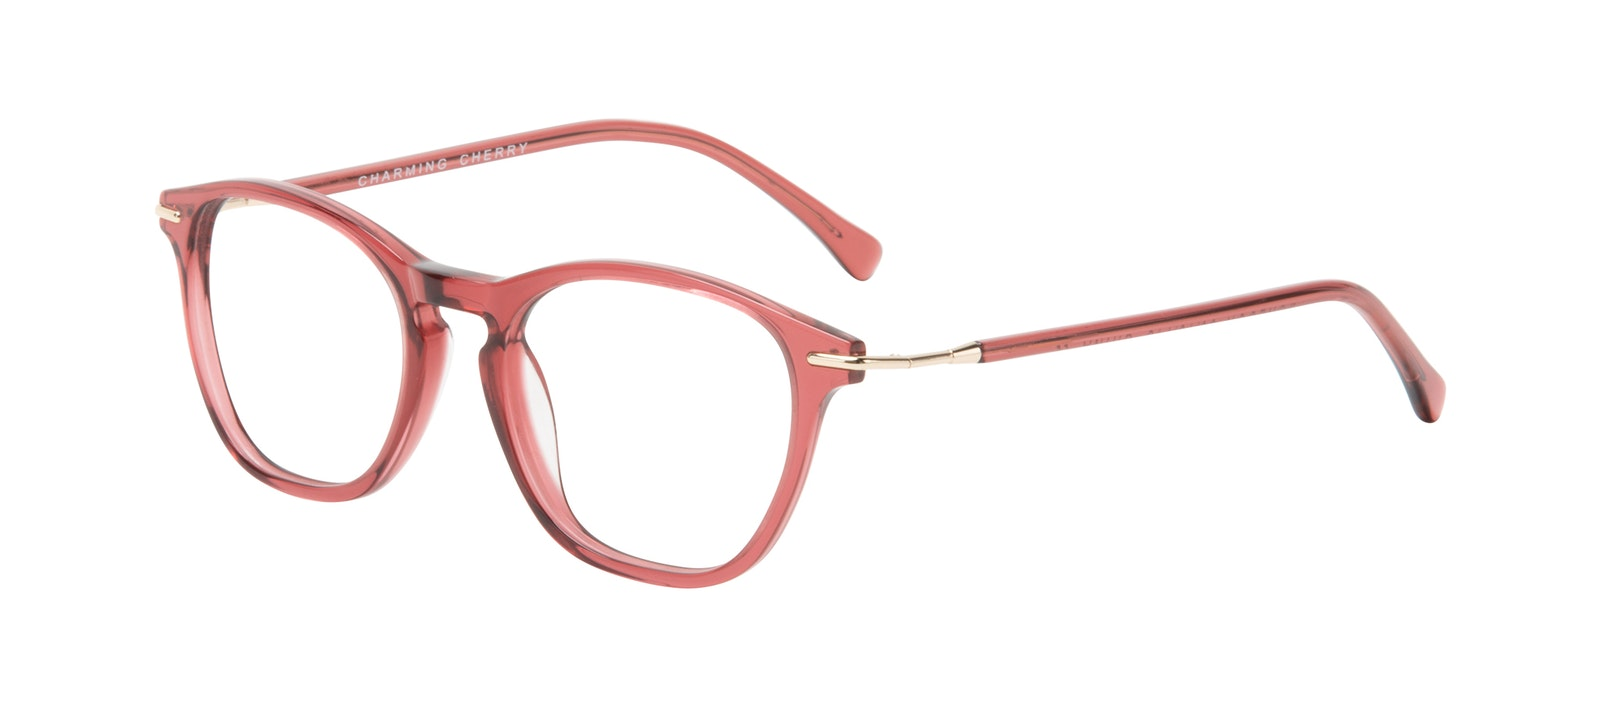 Affordable Fashion Glasses Square Eyeglasses Women Charming Cherry Tilt